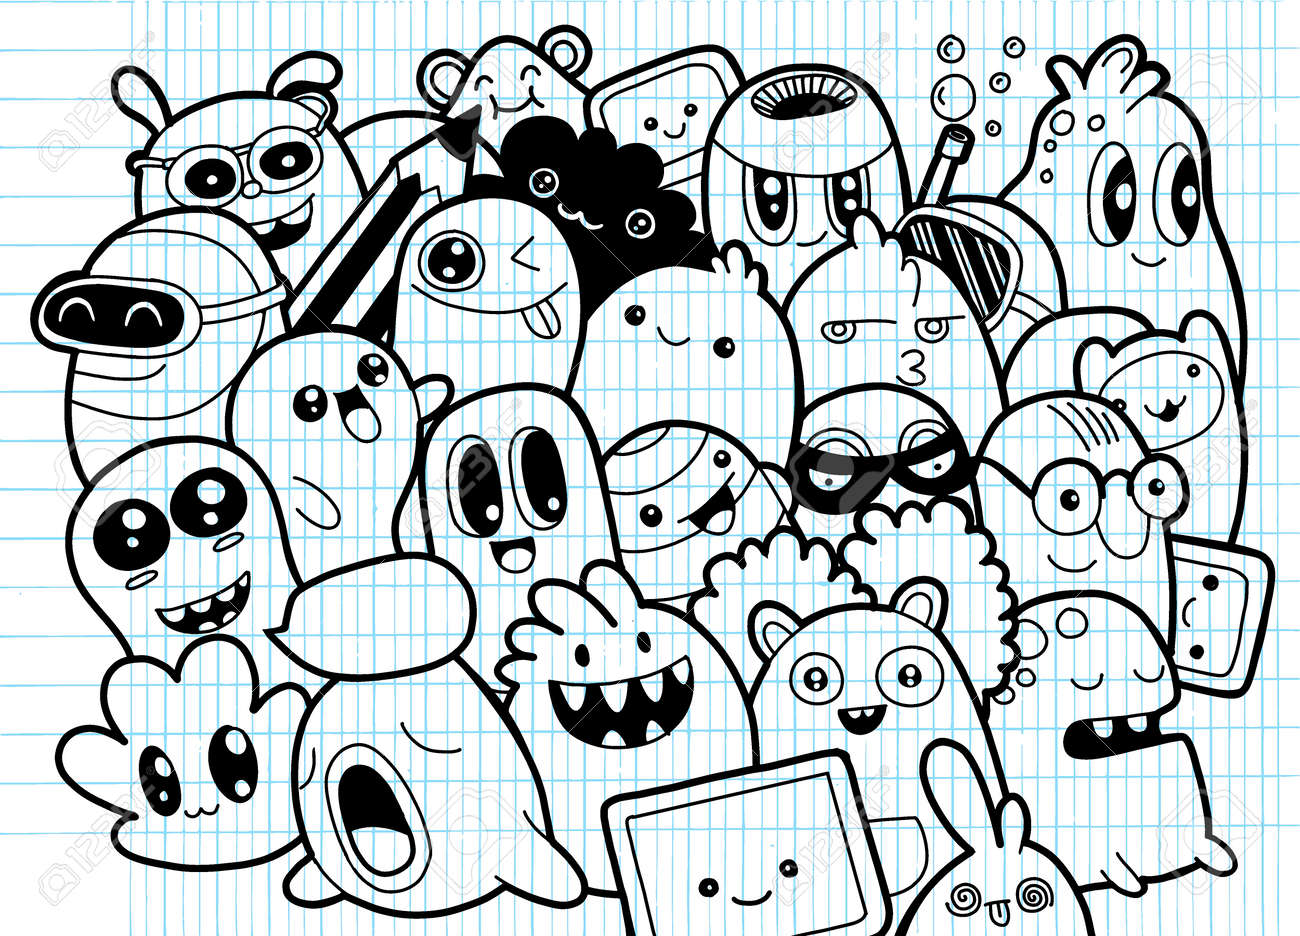 Set Of Funny Cute Monsters, Aliens Or Fantasy Pets For Kids Coloring ...